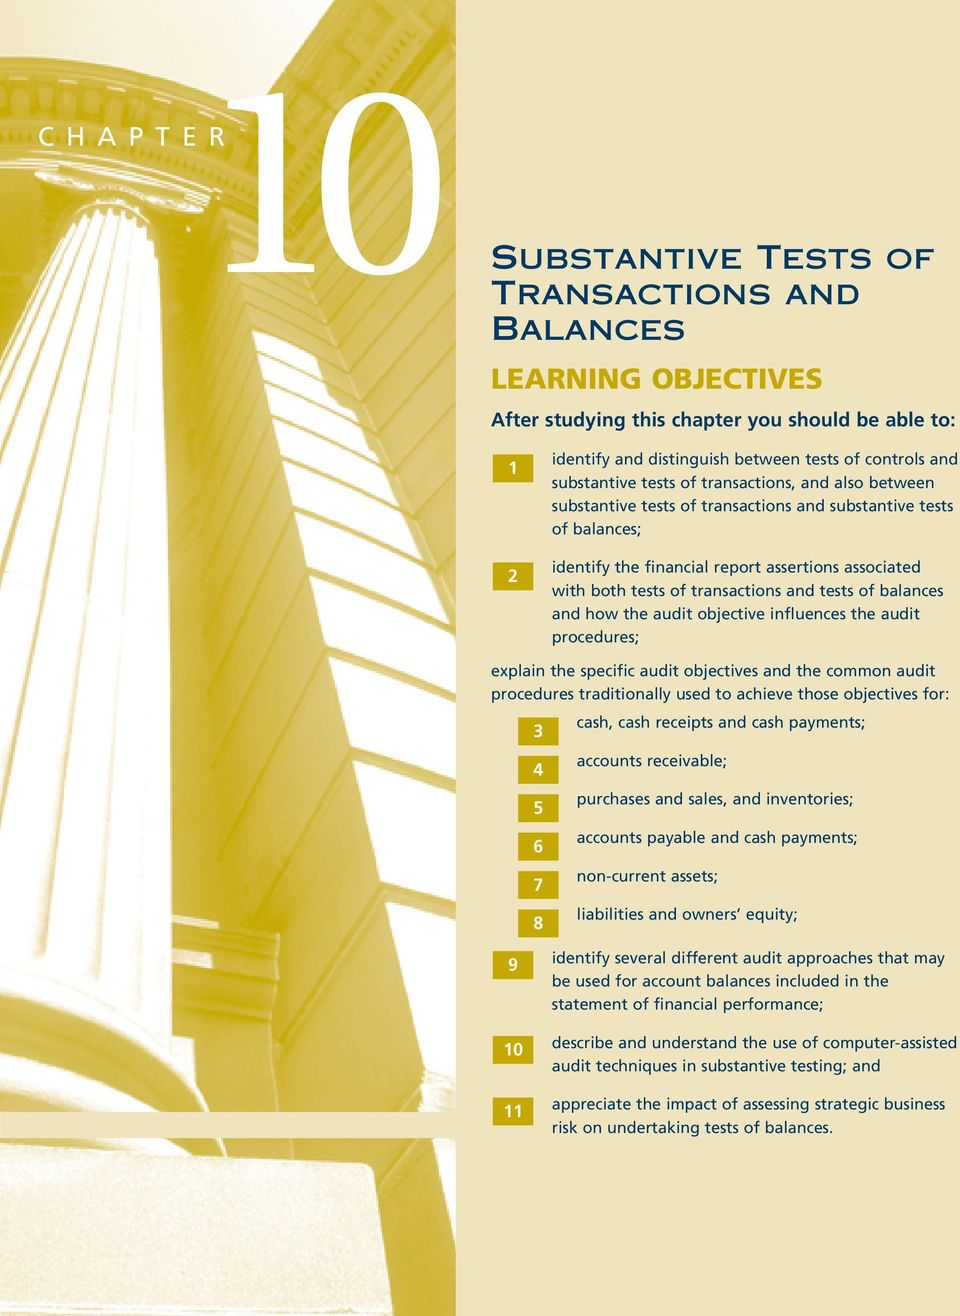 tests of balances and how the audit objective influences the audit procedures; explain the specific audit objectives and the common audit procedures traditionally used to achieve those objectives